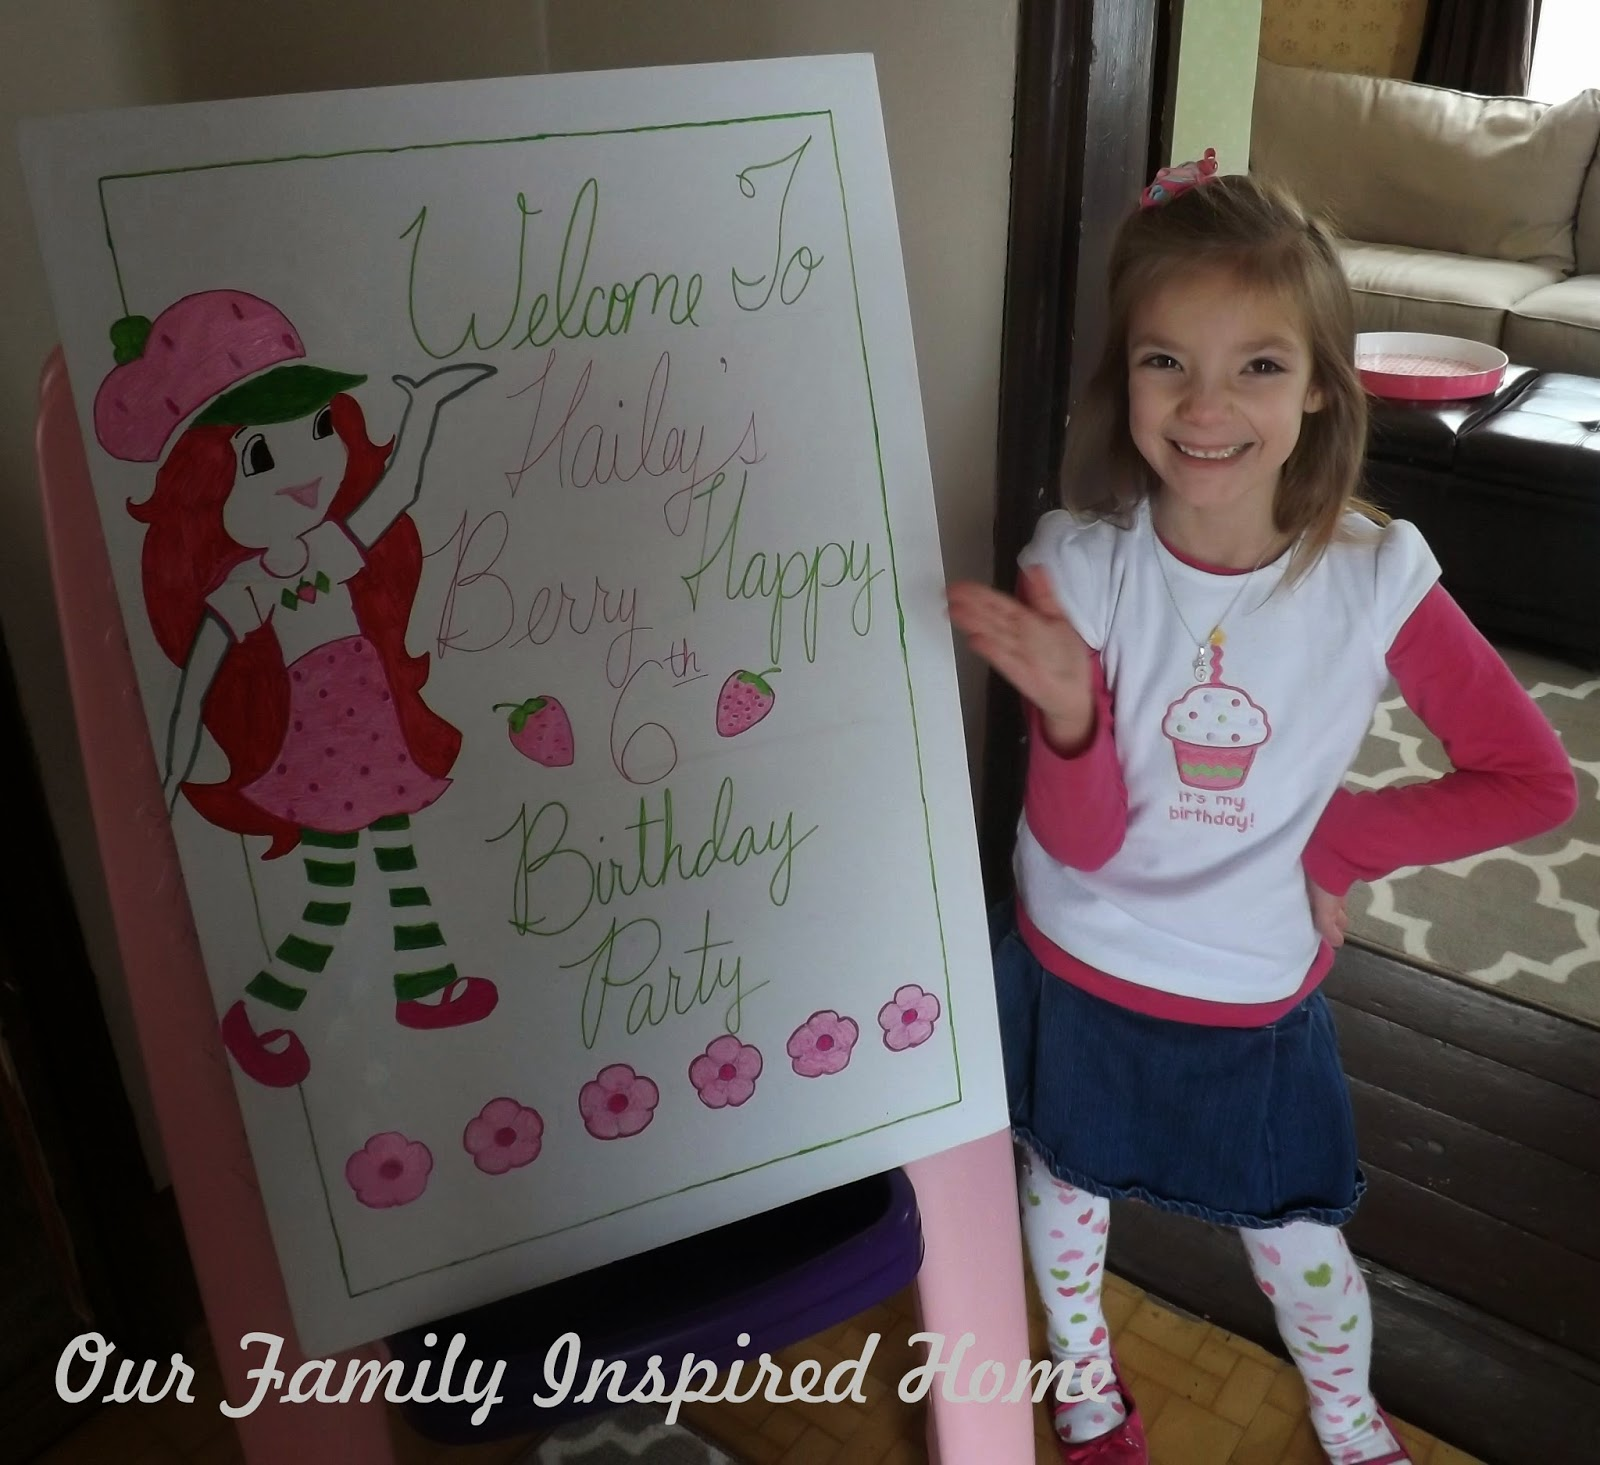 And not only did we still have a Strawberry Shortcake theme but it also felt a little bit like spring. We are sooooo looking forward to spring!  sc 1 st  Our Family Inspired Home & Our Family Inspired Home: Haileyu0027s Birthday Strawberry Shortcake Part 3